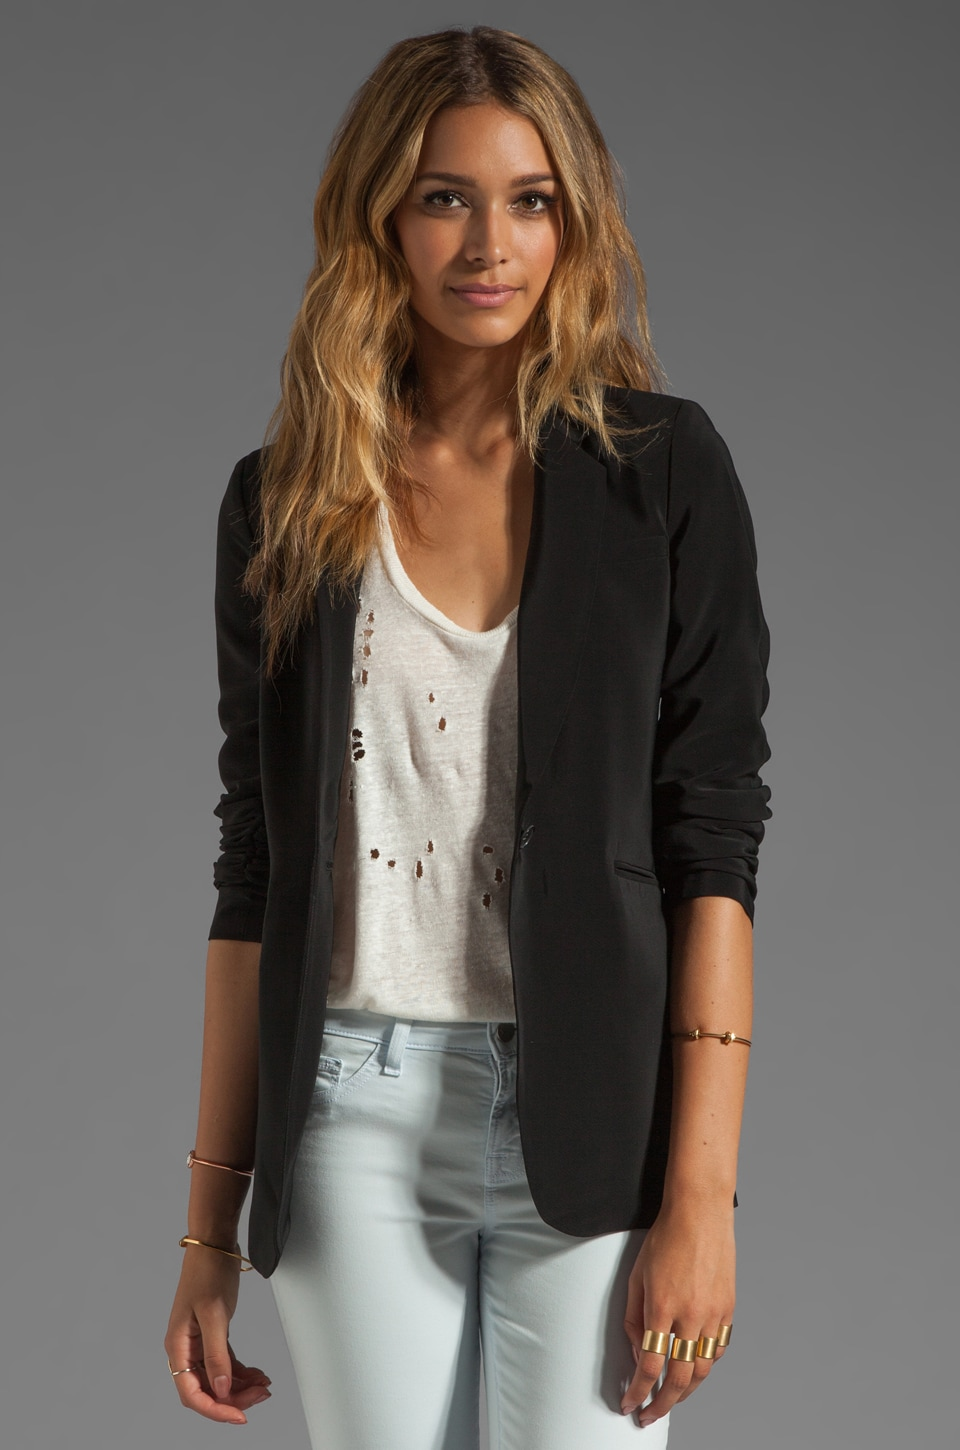 Elizabeth and James Crepe Heather Blazer in Black